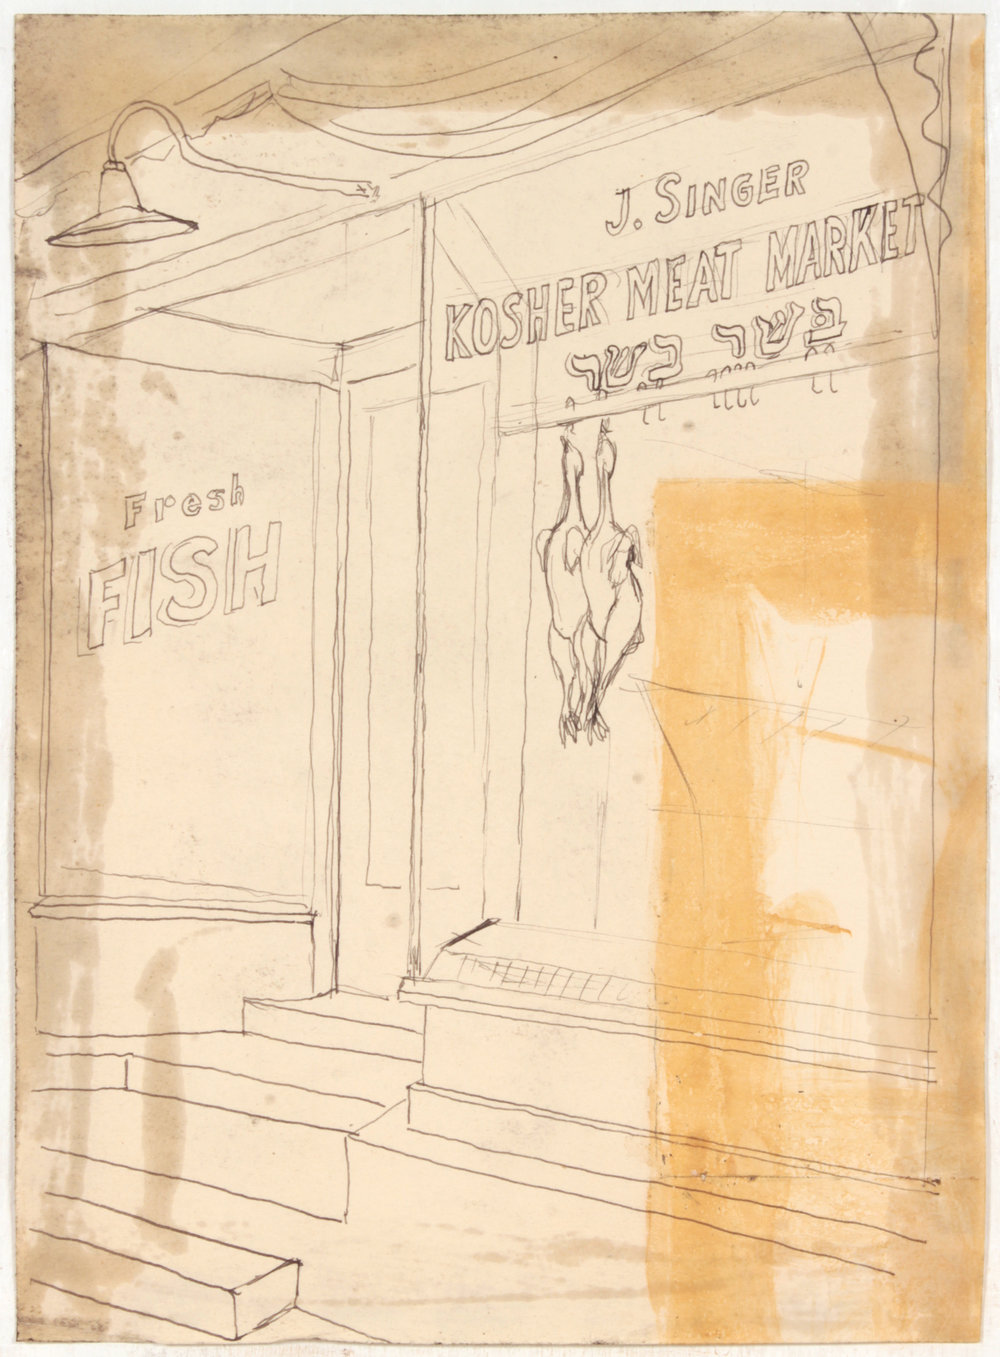 7. 1947-48, Kosher Meat Market, Pen and Ink on Paper, 11.50x8.25, PPS 1484.JPG